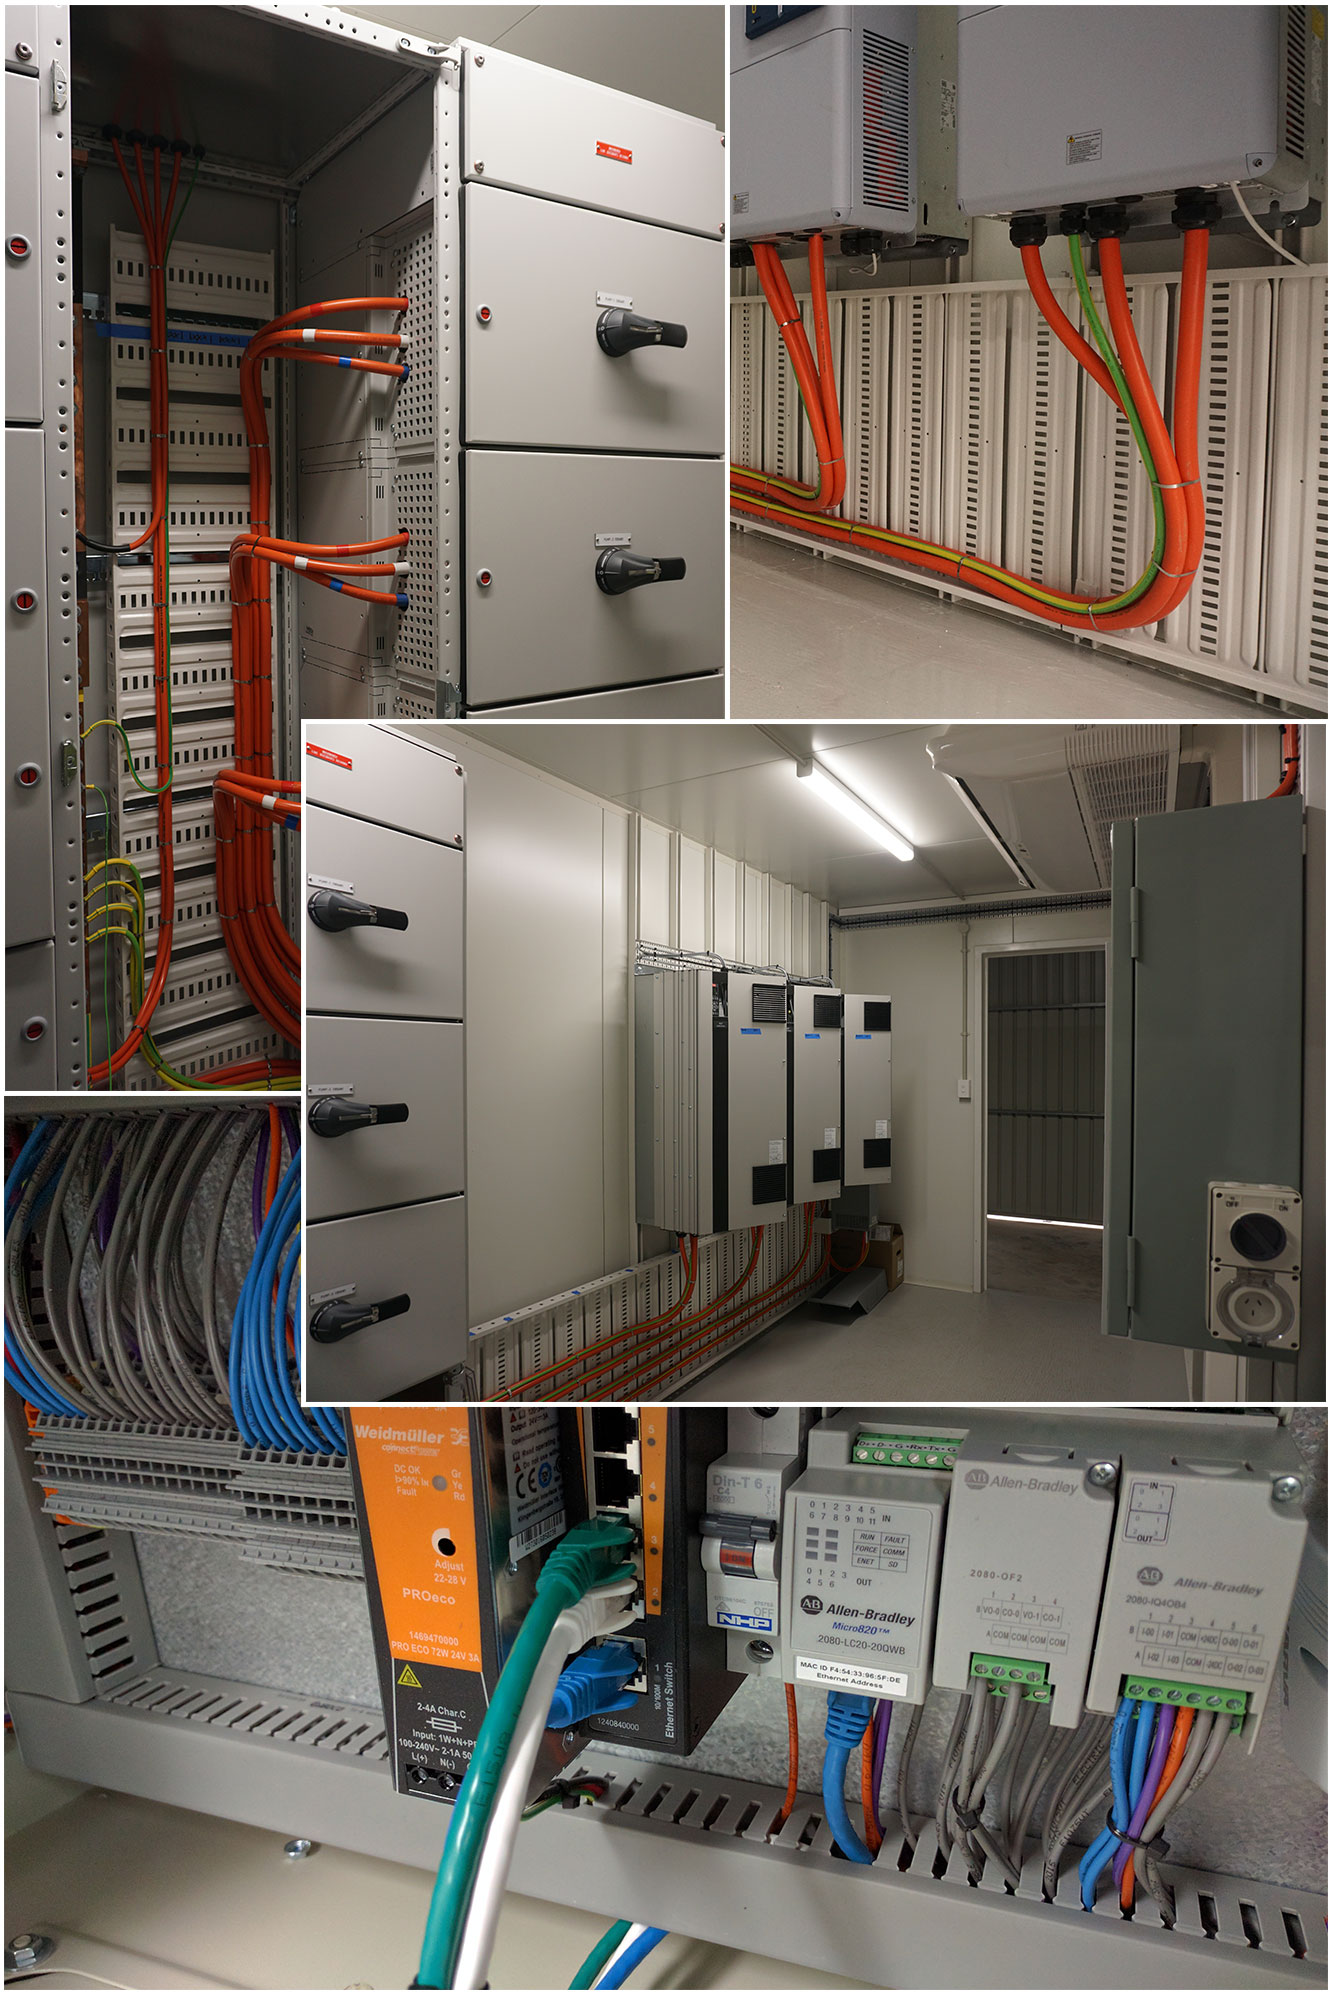 Switchboards And Control Panels Electrical Strict Standards To Ensure Each Every Switchboard Panel We Design Manufacture Is The Very Best Unit Available In Market Today